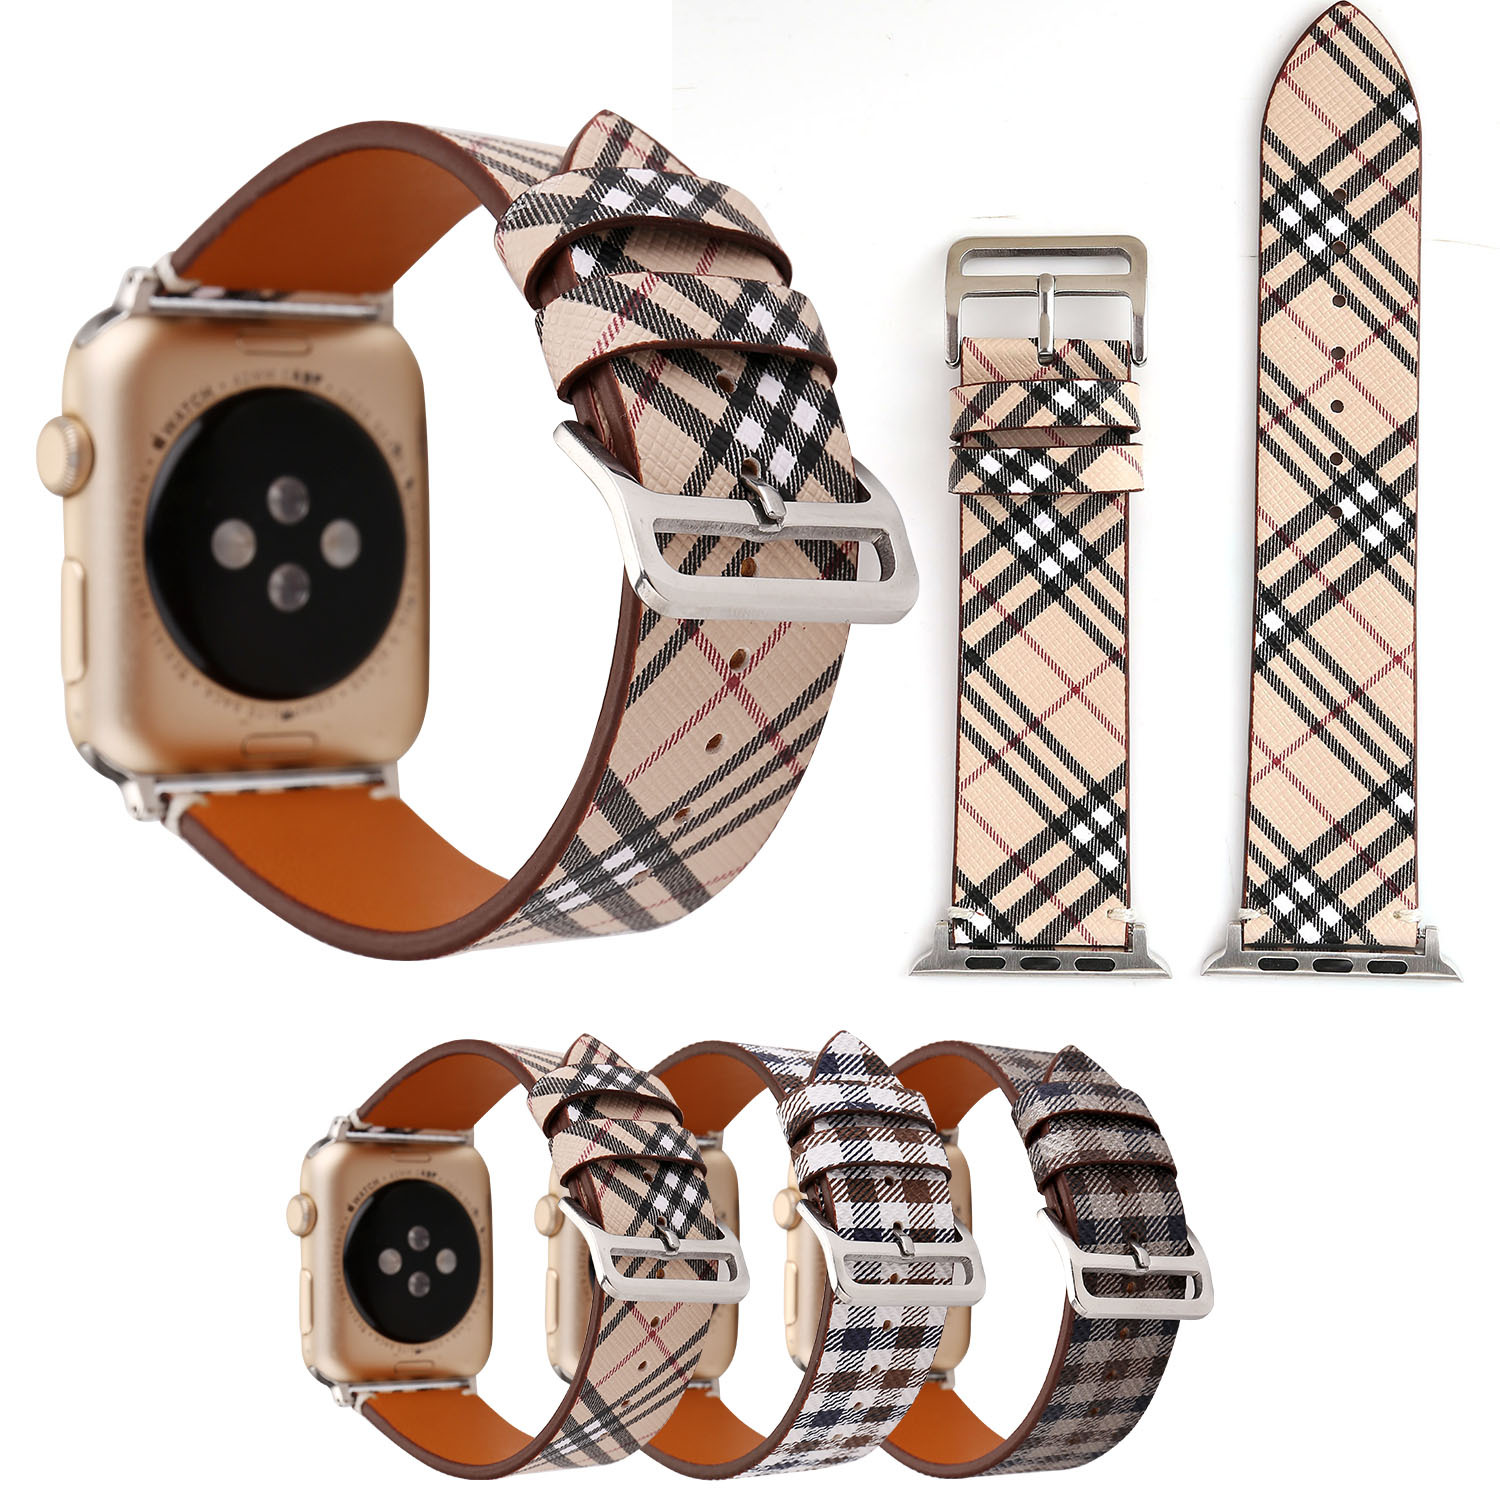 For Apple Watch Leather Watch Strap APPLE Watch Leather Watch Strap Fashion Pattern IWatch Leather Watch Strap